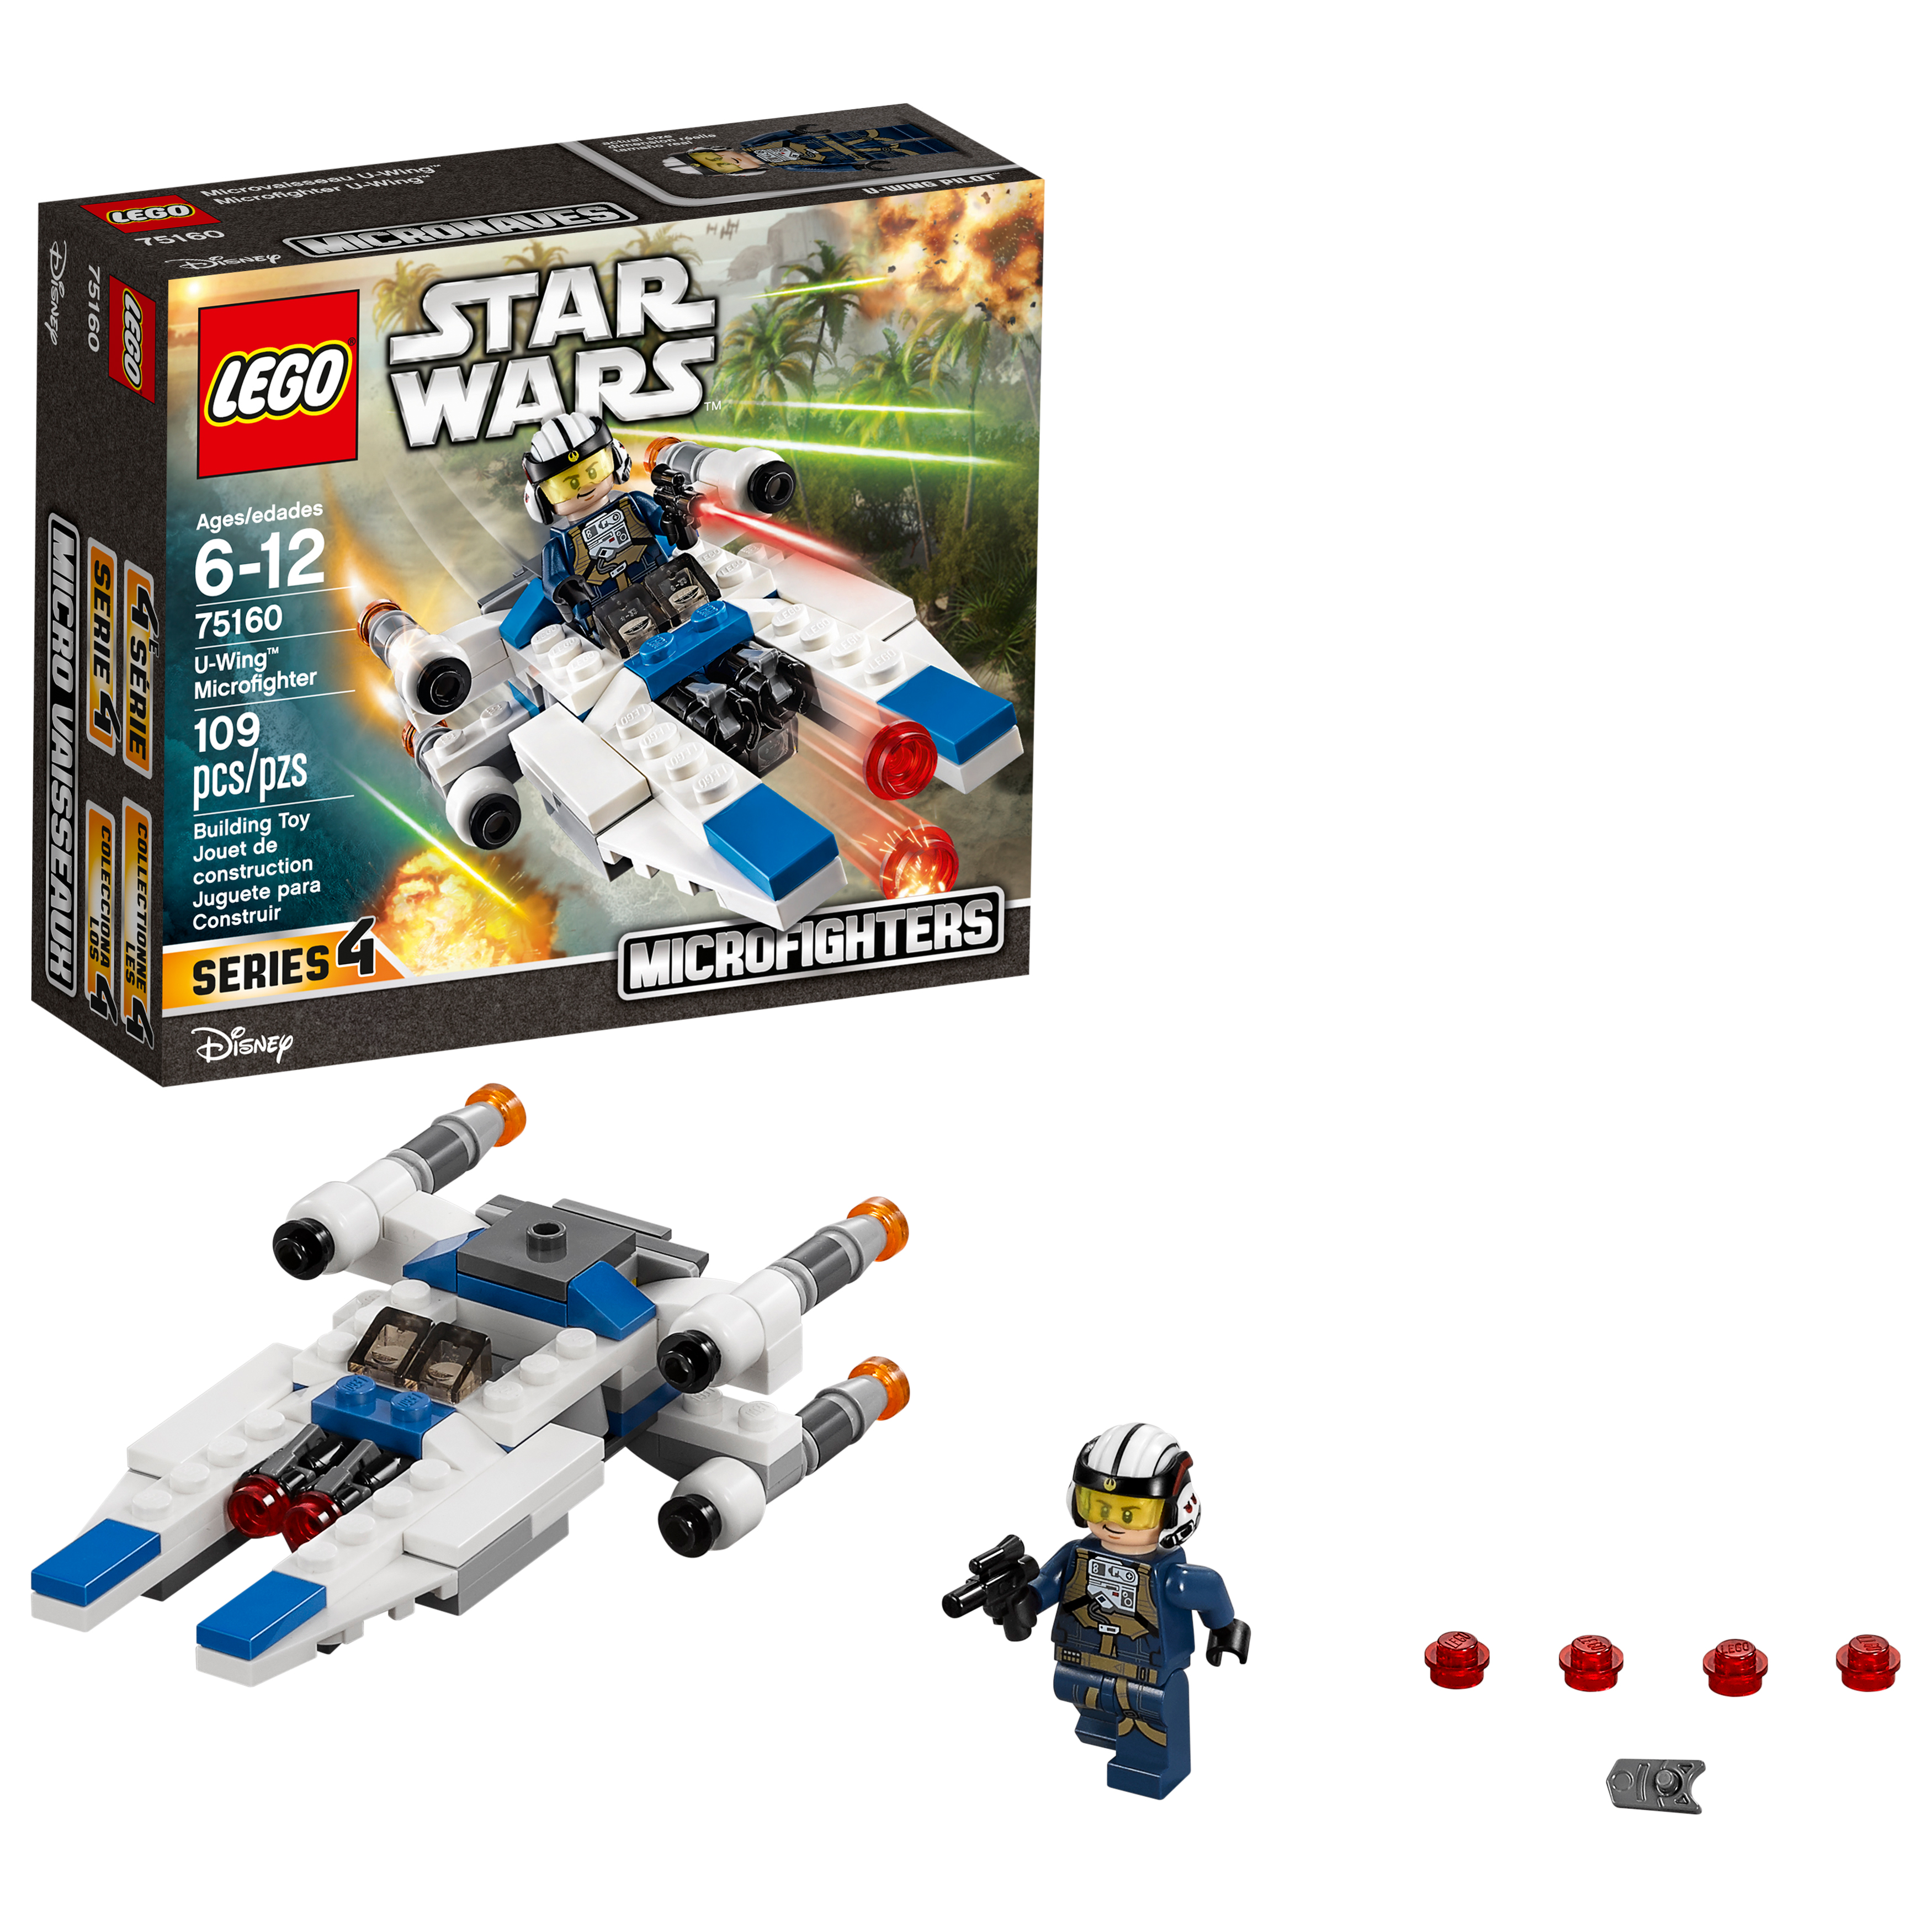 LEGO Star Wars™ U-Wing™ Microfighter 75160 (109 Pieces)